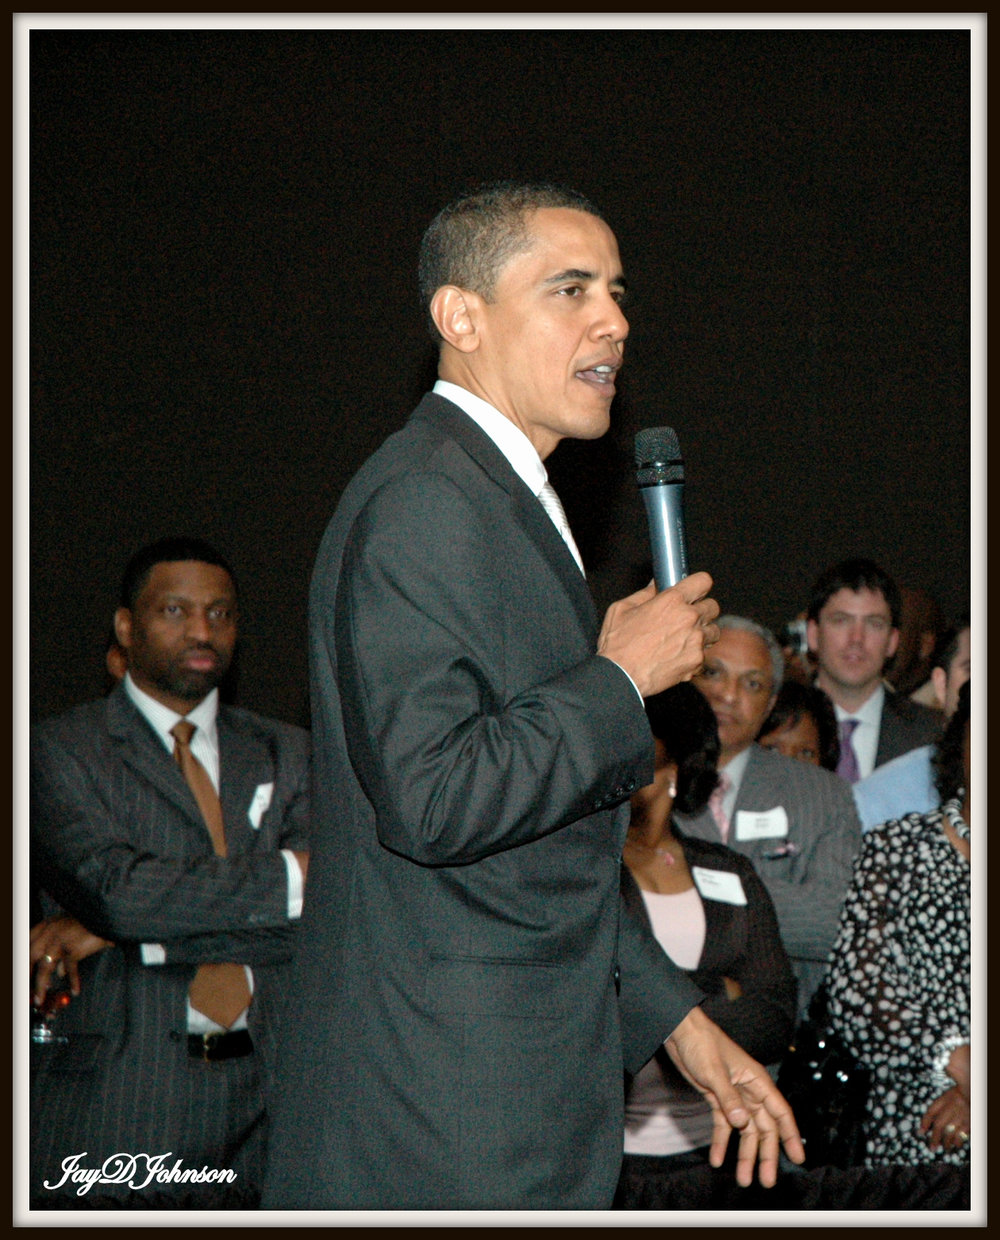 Obama in Jackson by Jay Johnson.jpg